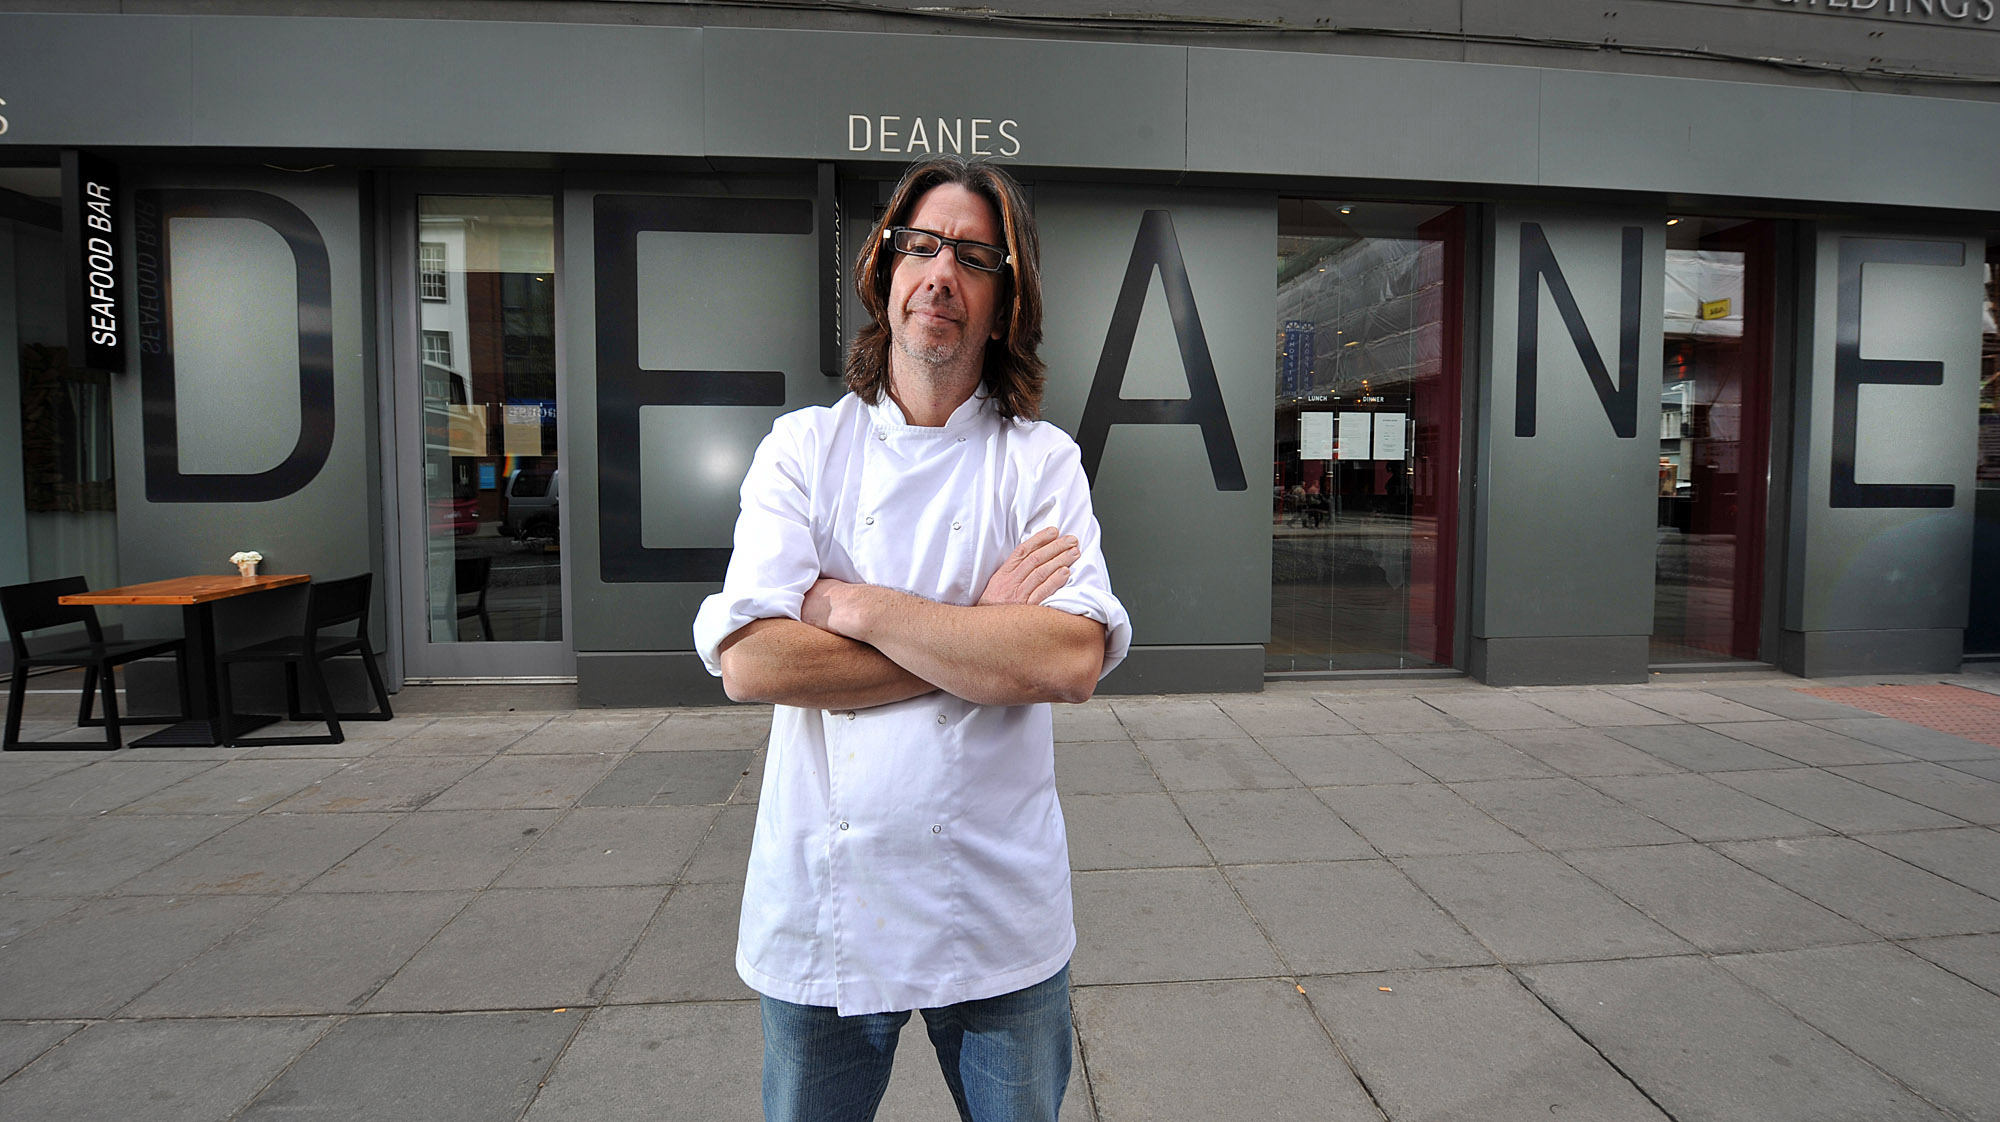 Click here for our Interview with Michael Deane